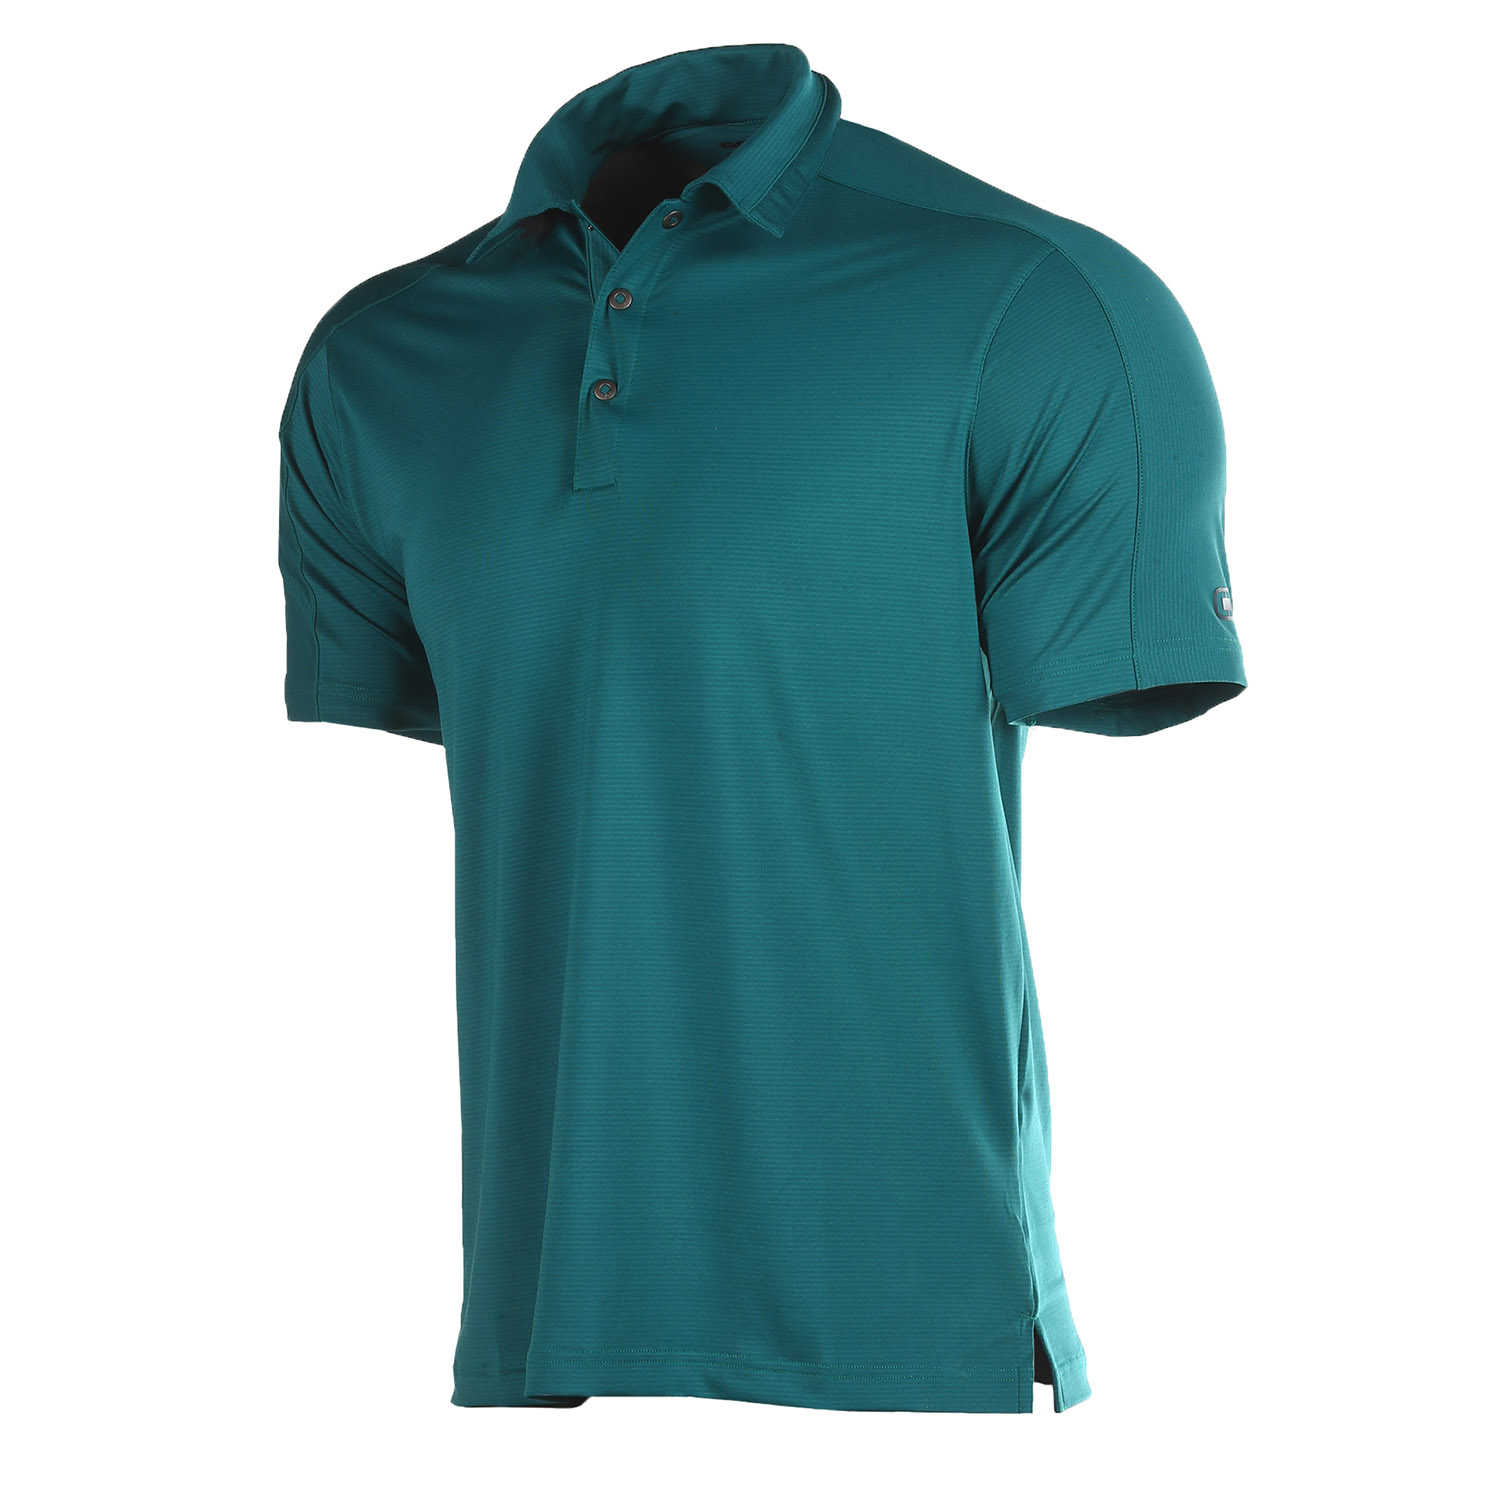 Designer Polo Shirts Clearance